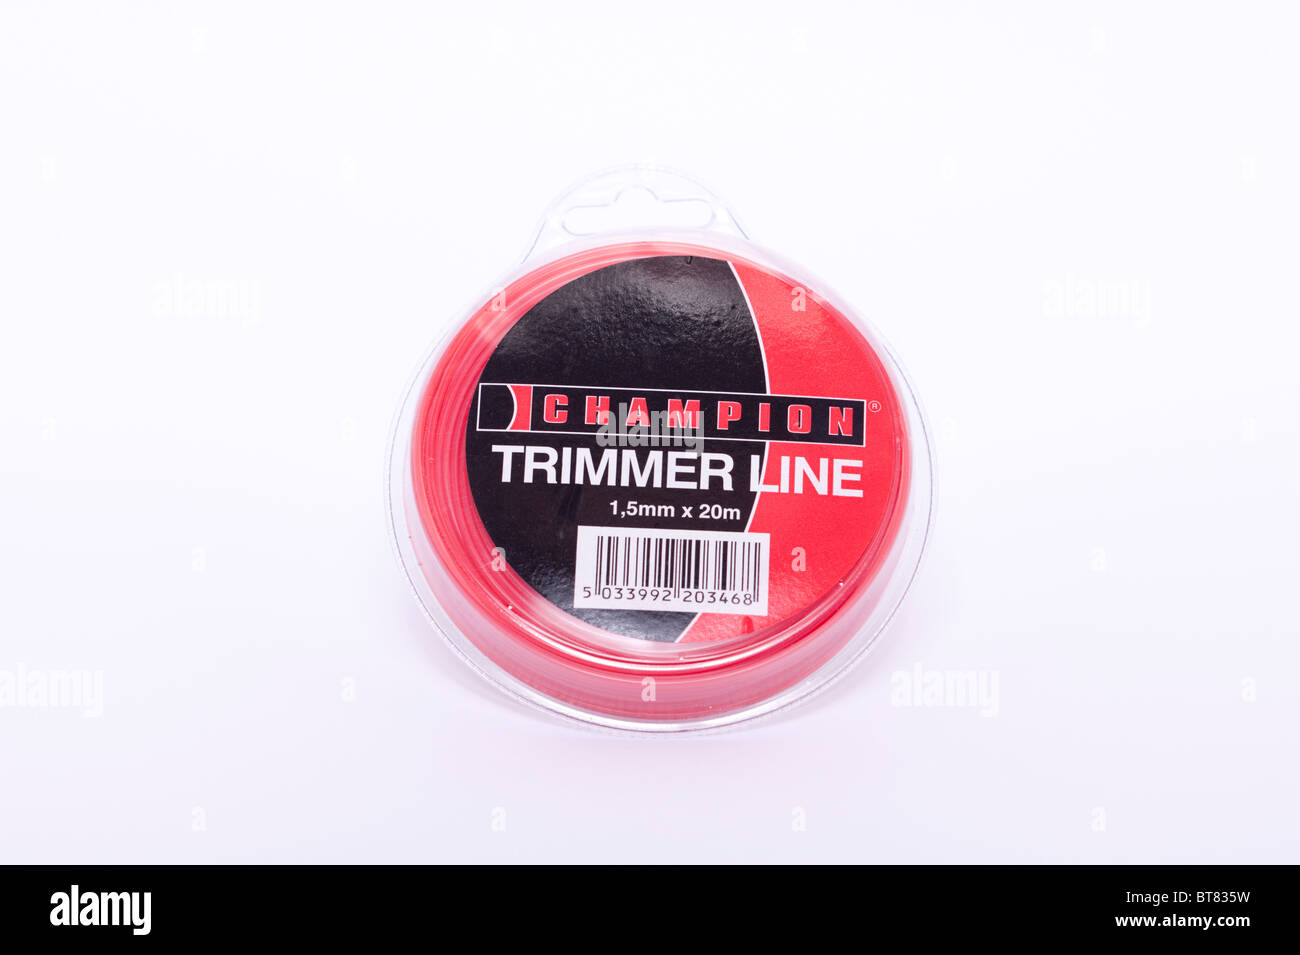 A close up photo of a pack of champion trimmer line for strimmers against a white background - Stock Image